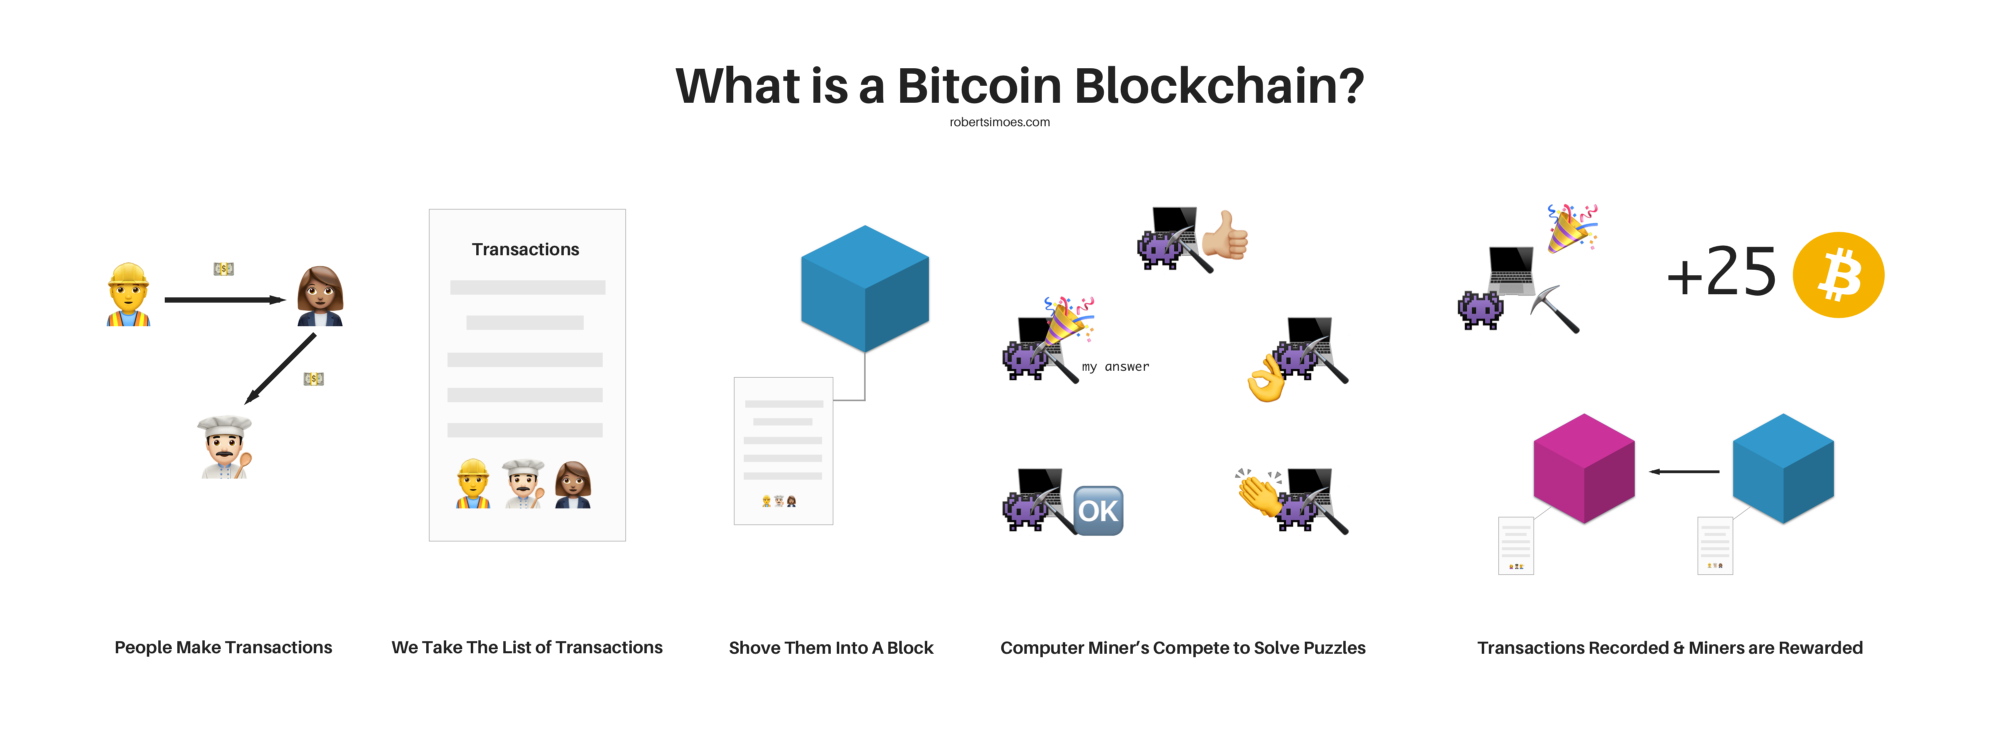 What Is A Bitcoin Blockchain Simple Explanation For Non Technical Persons